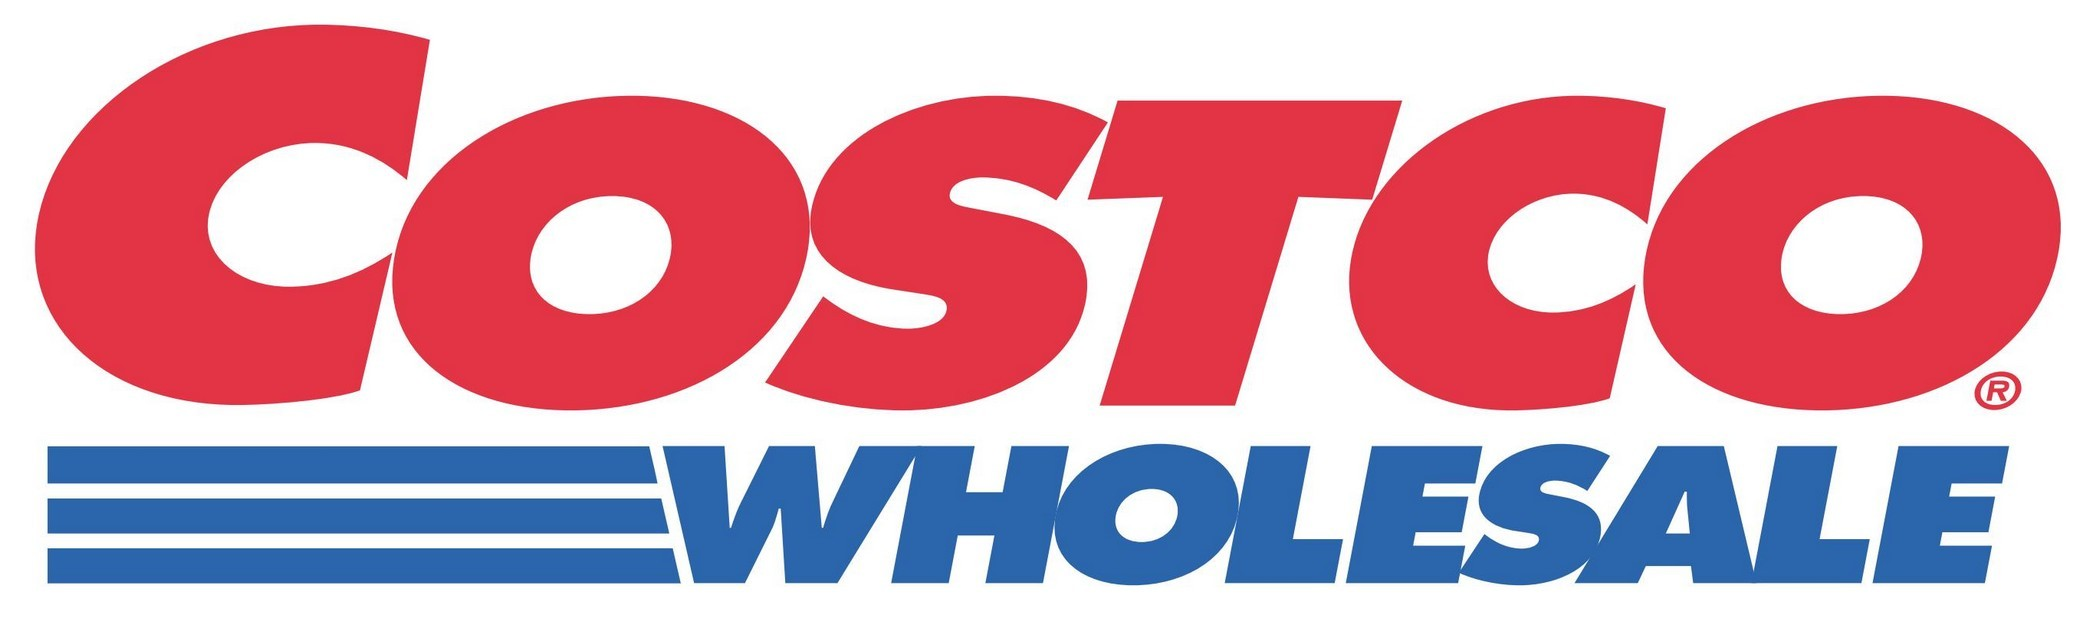 Costco Wholesale Logo [EPS File] Vector EPS Free Download, Logo, Icons, Brand Emblems